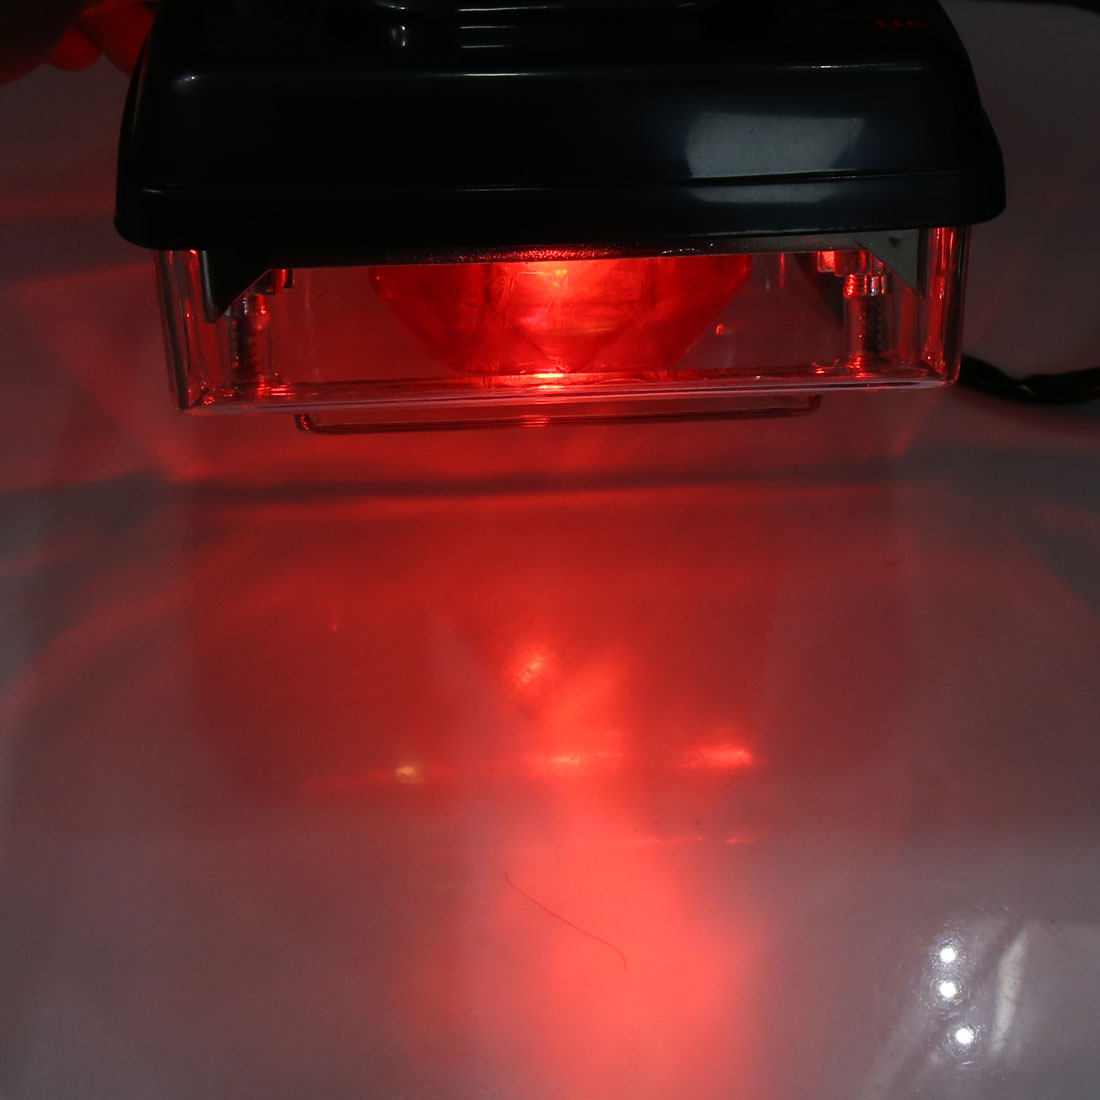 DC 12V Plastic Shell Red License Plate Lamp Motorcycle Tail Light for CG125 - image 1 of 4